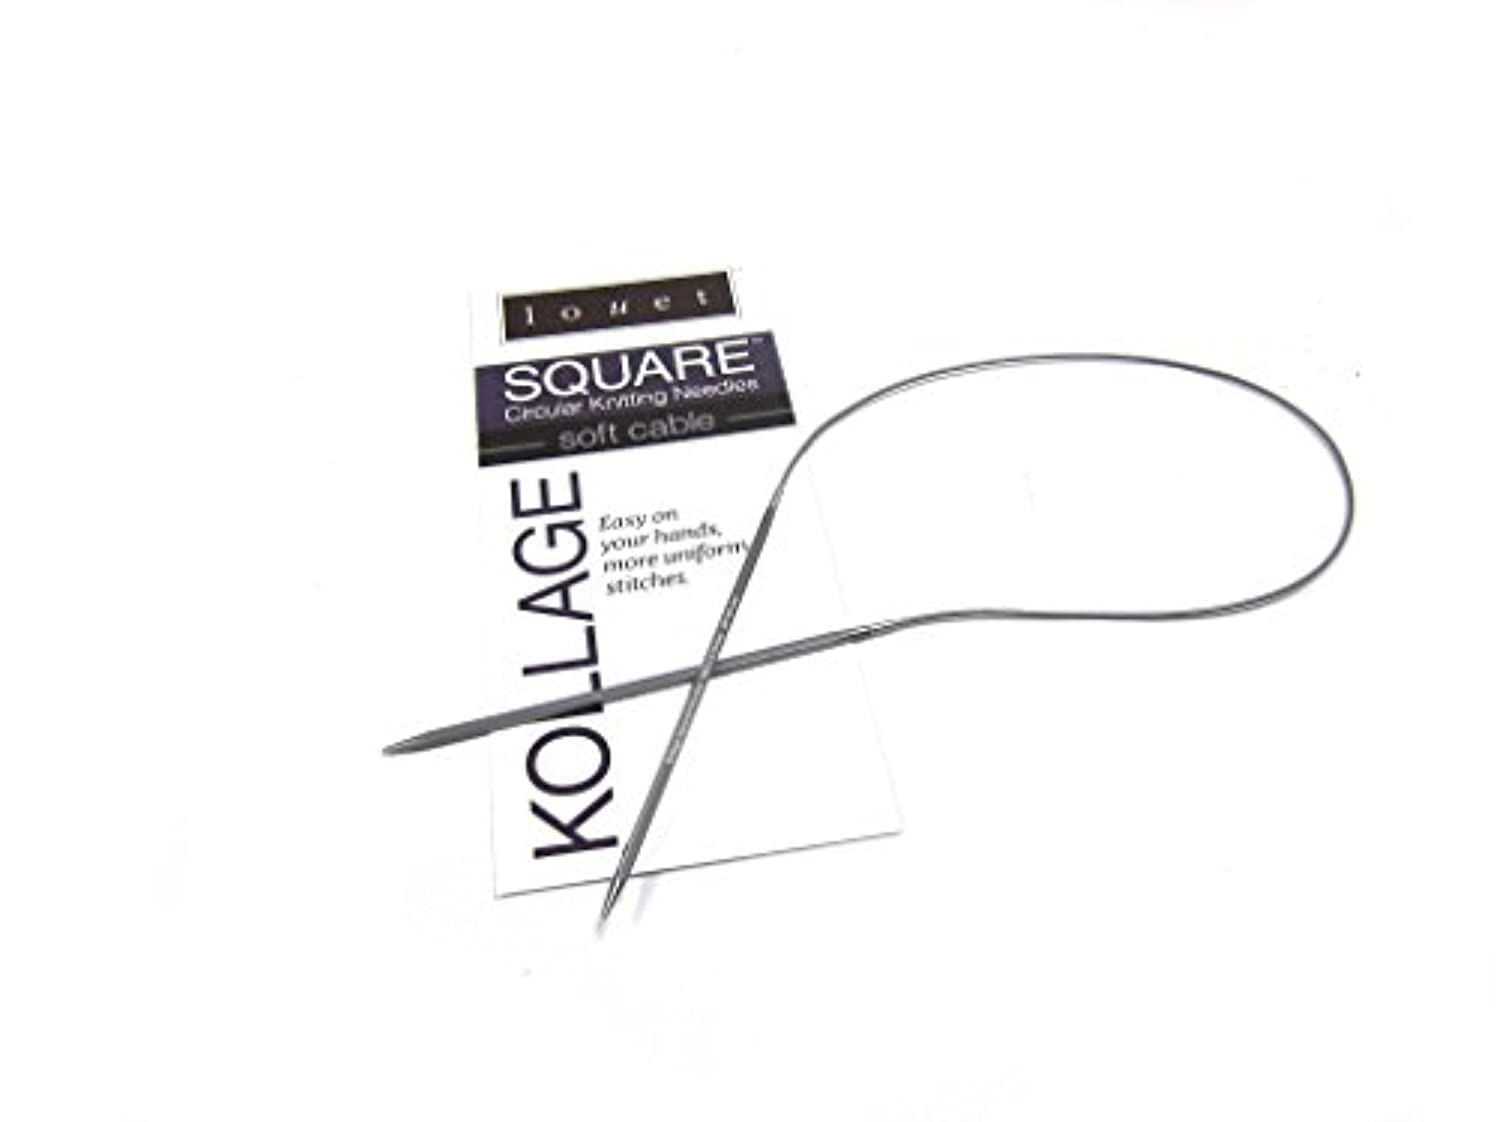 Kollage Square Circular 9-inch (23cm) Knitting Needle with Soft Cable (US 3 / 3.25mm)